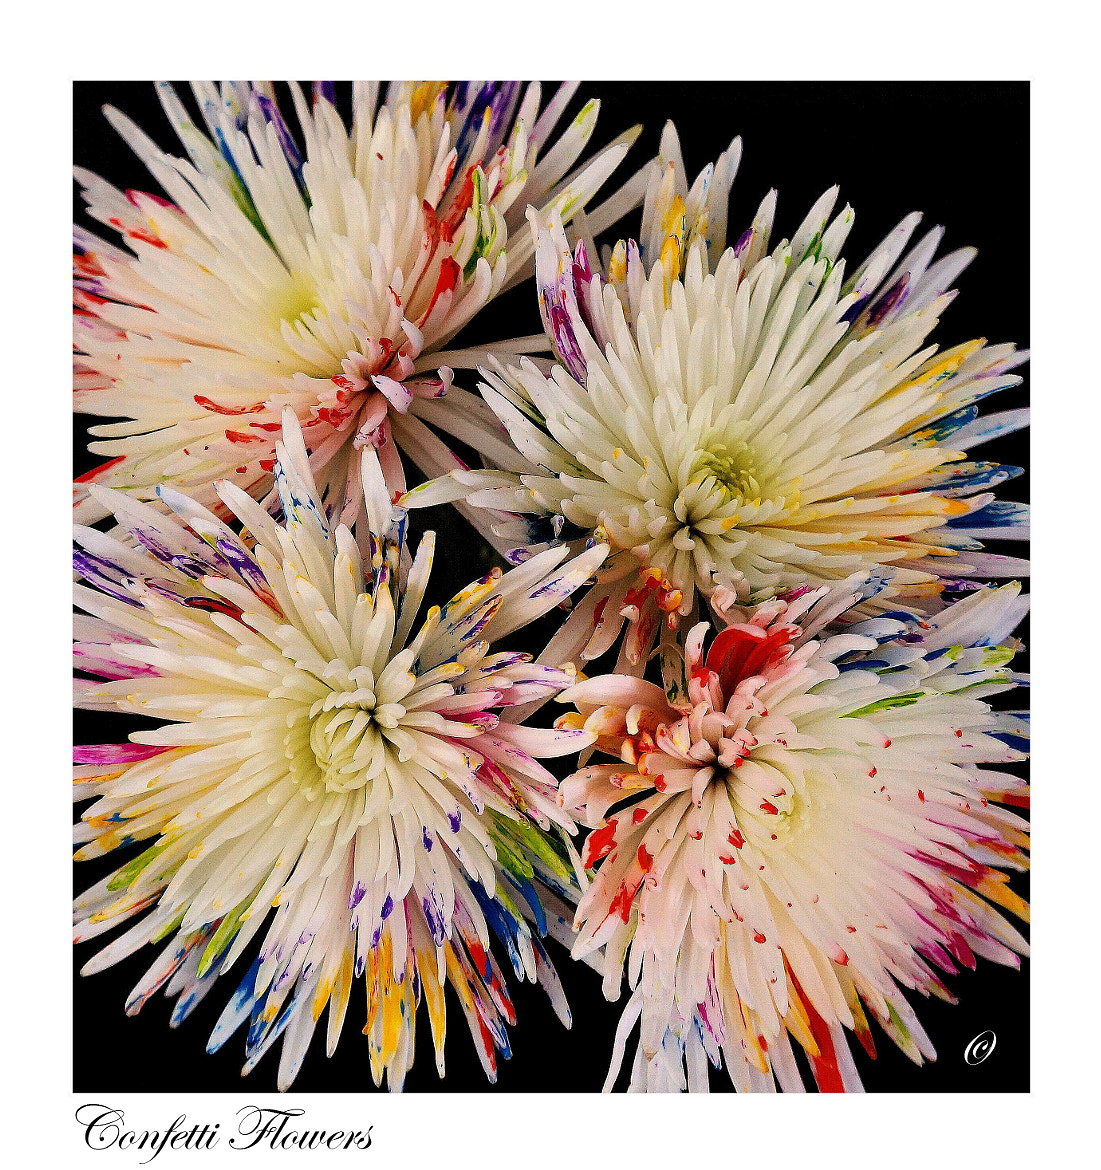 Photograph Confetti Flowers #2 by Jan Siemucha on 500px